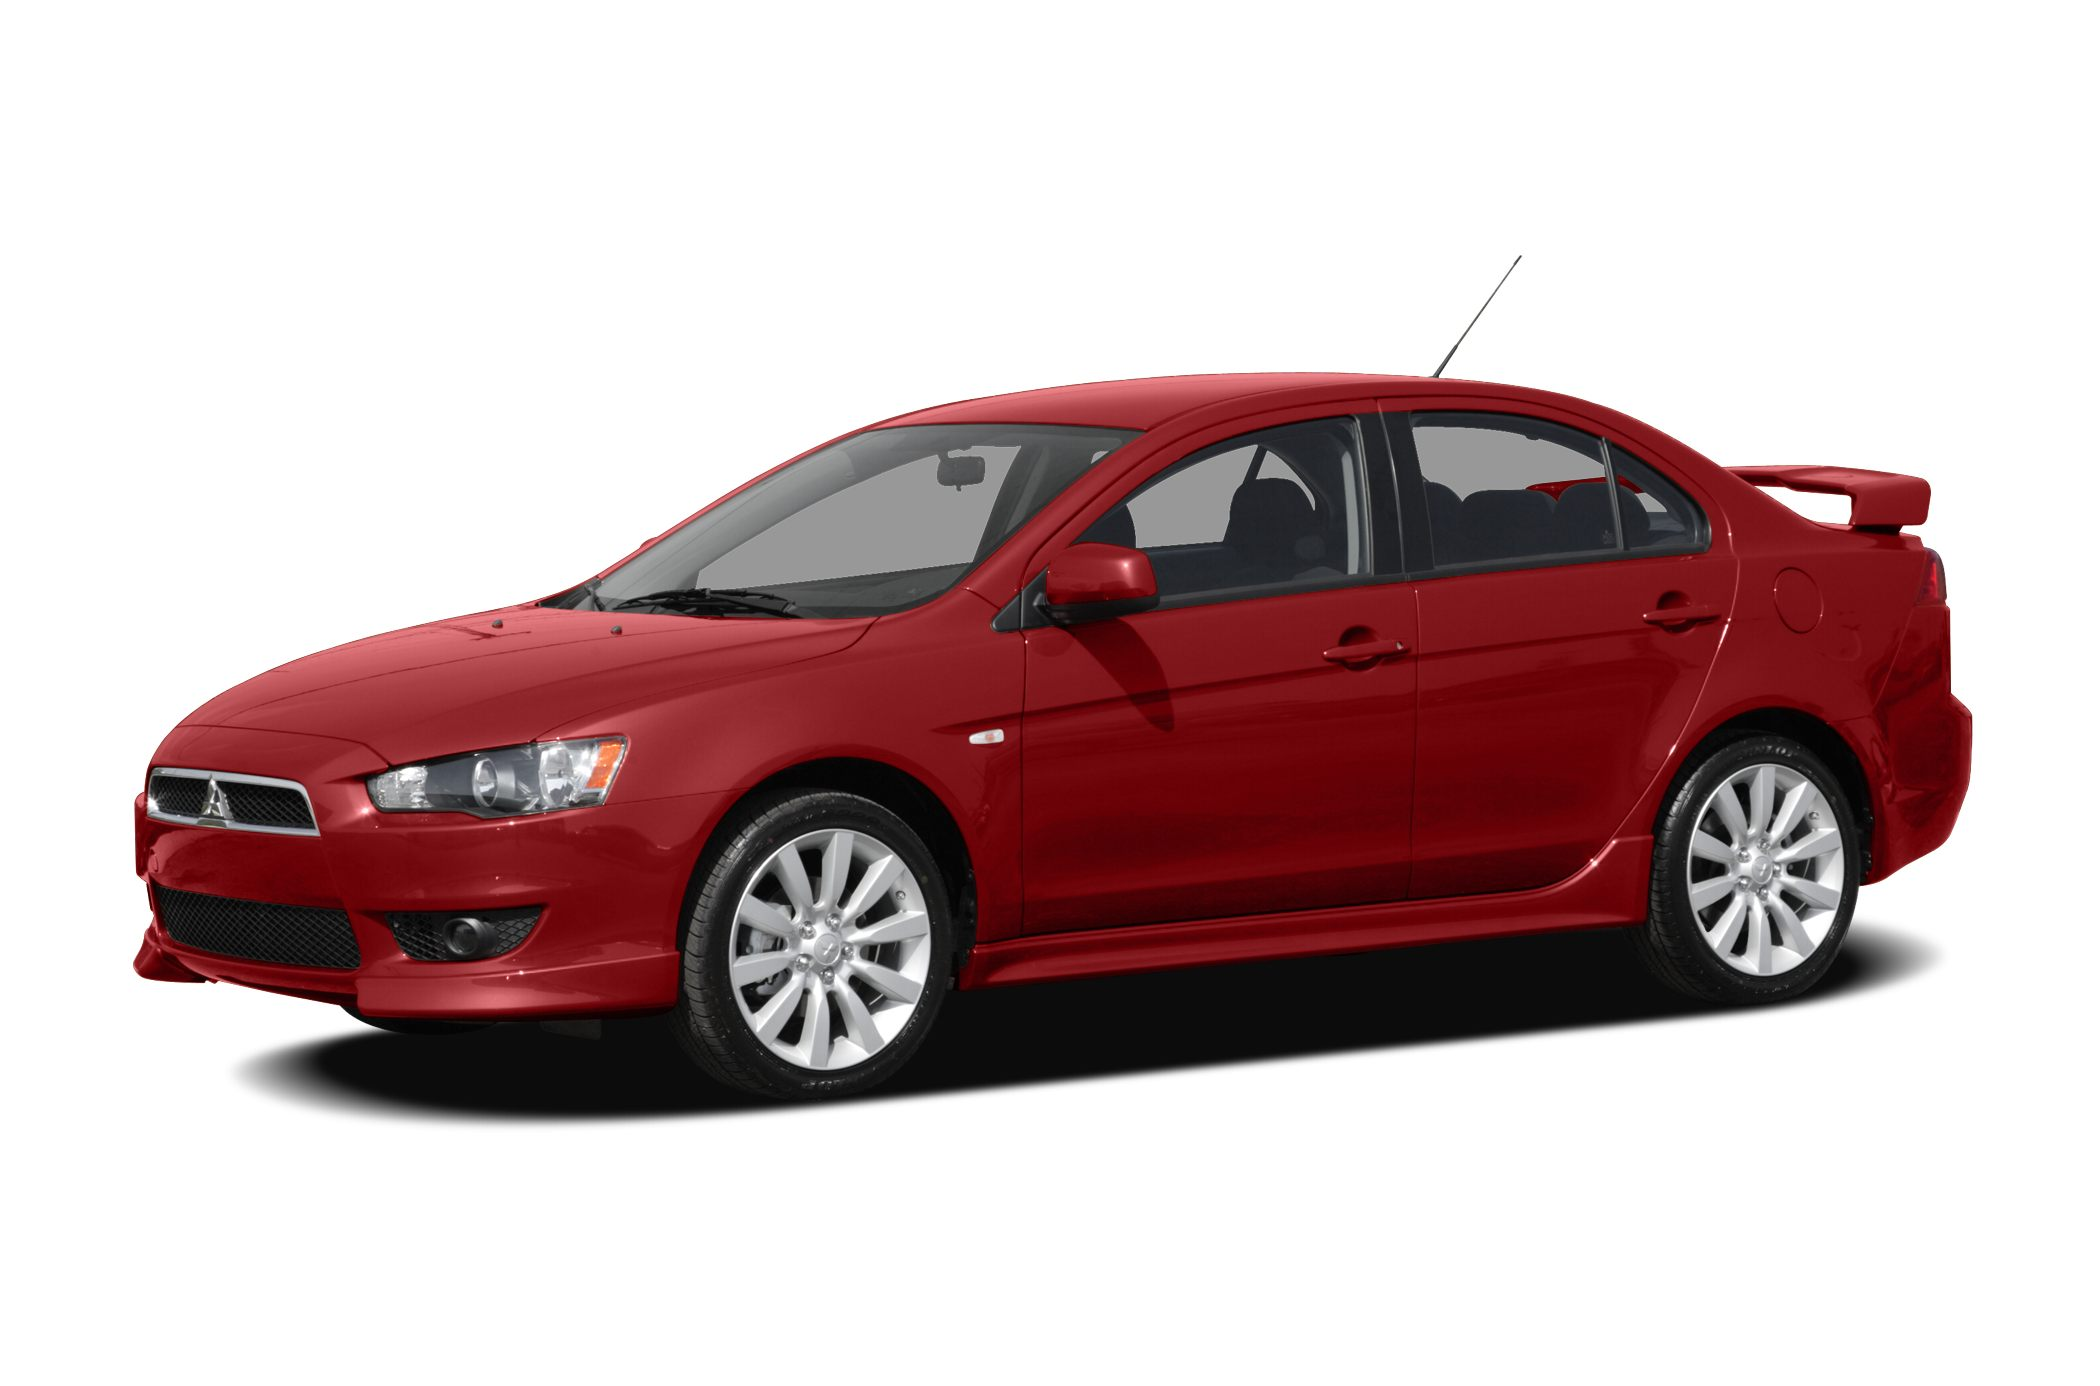 2011 Mitsubishi Lancer ES automatic FRESH TRADE MULLINAX CERTIFIED PRE-OWNED means you get th